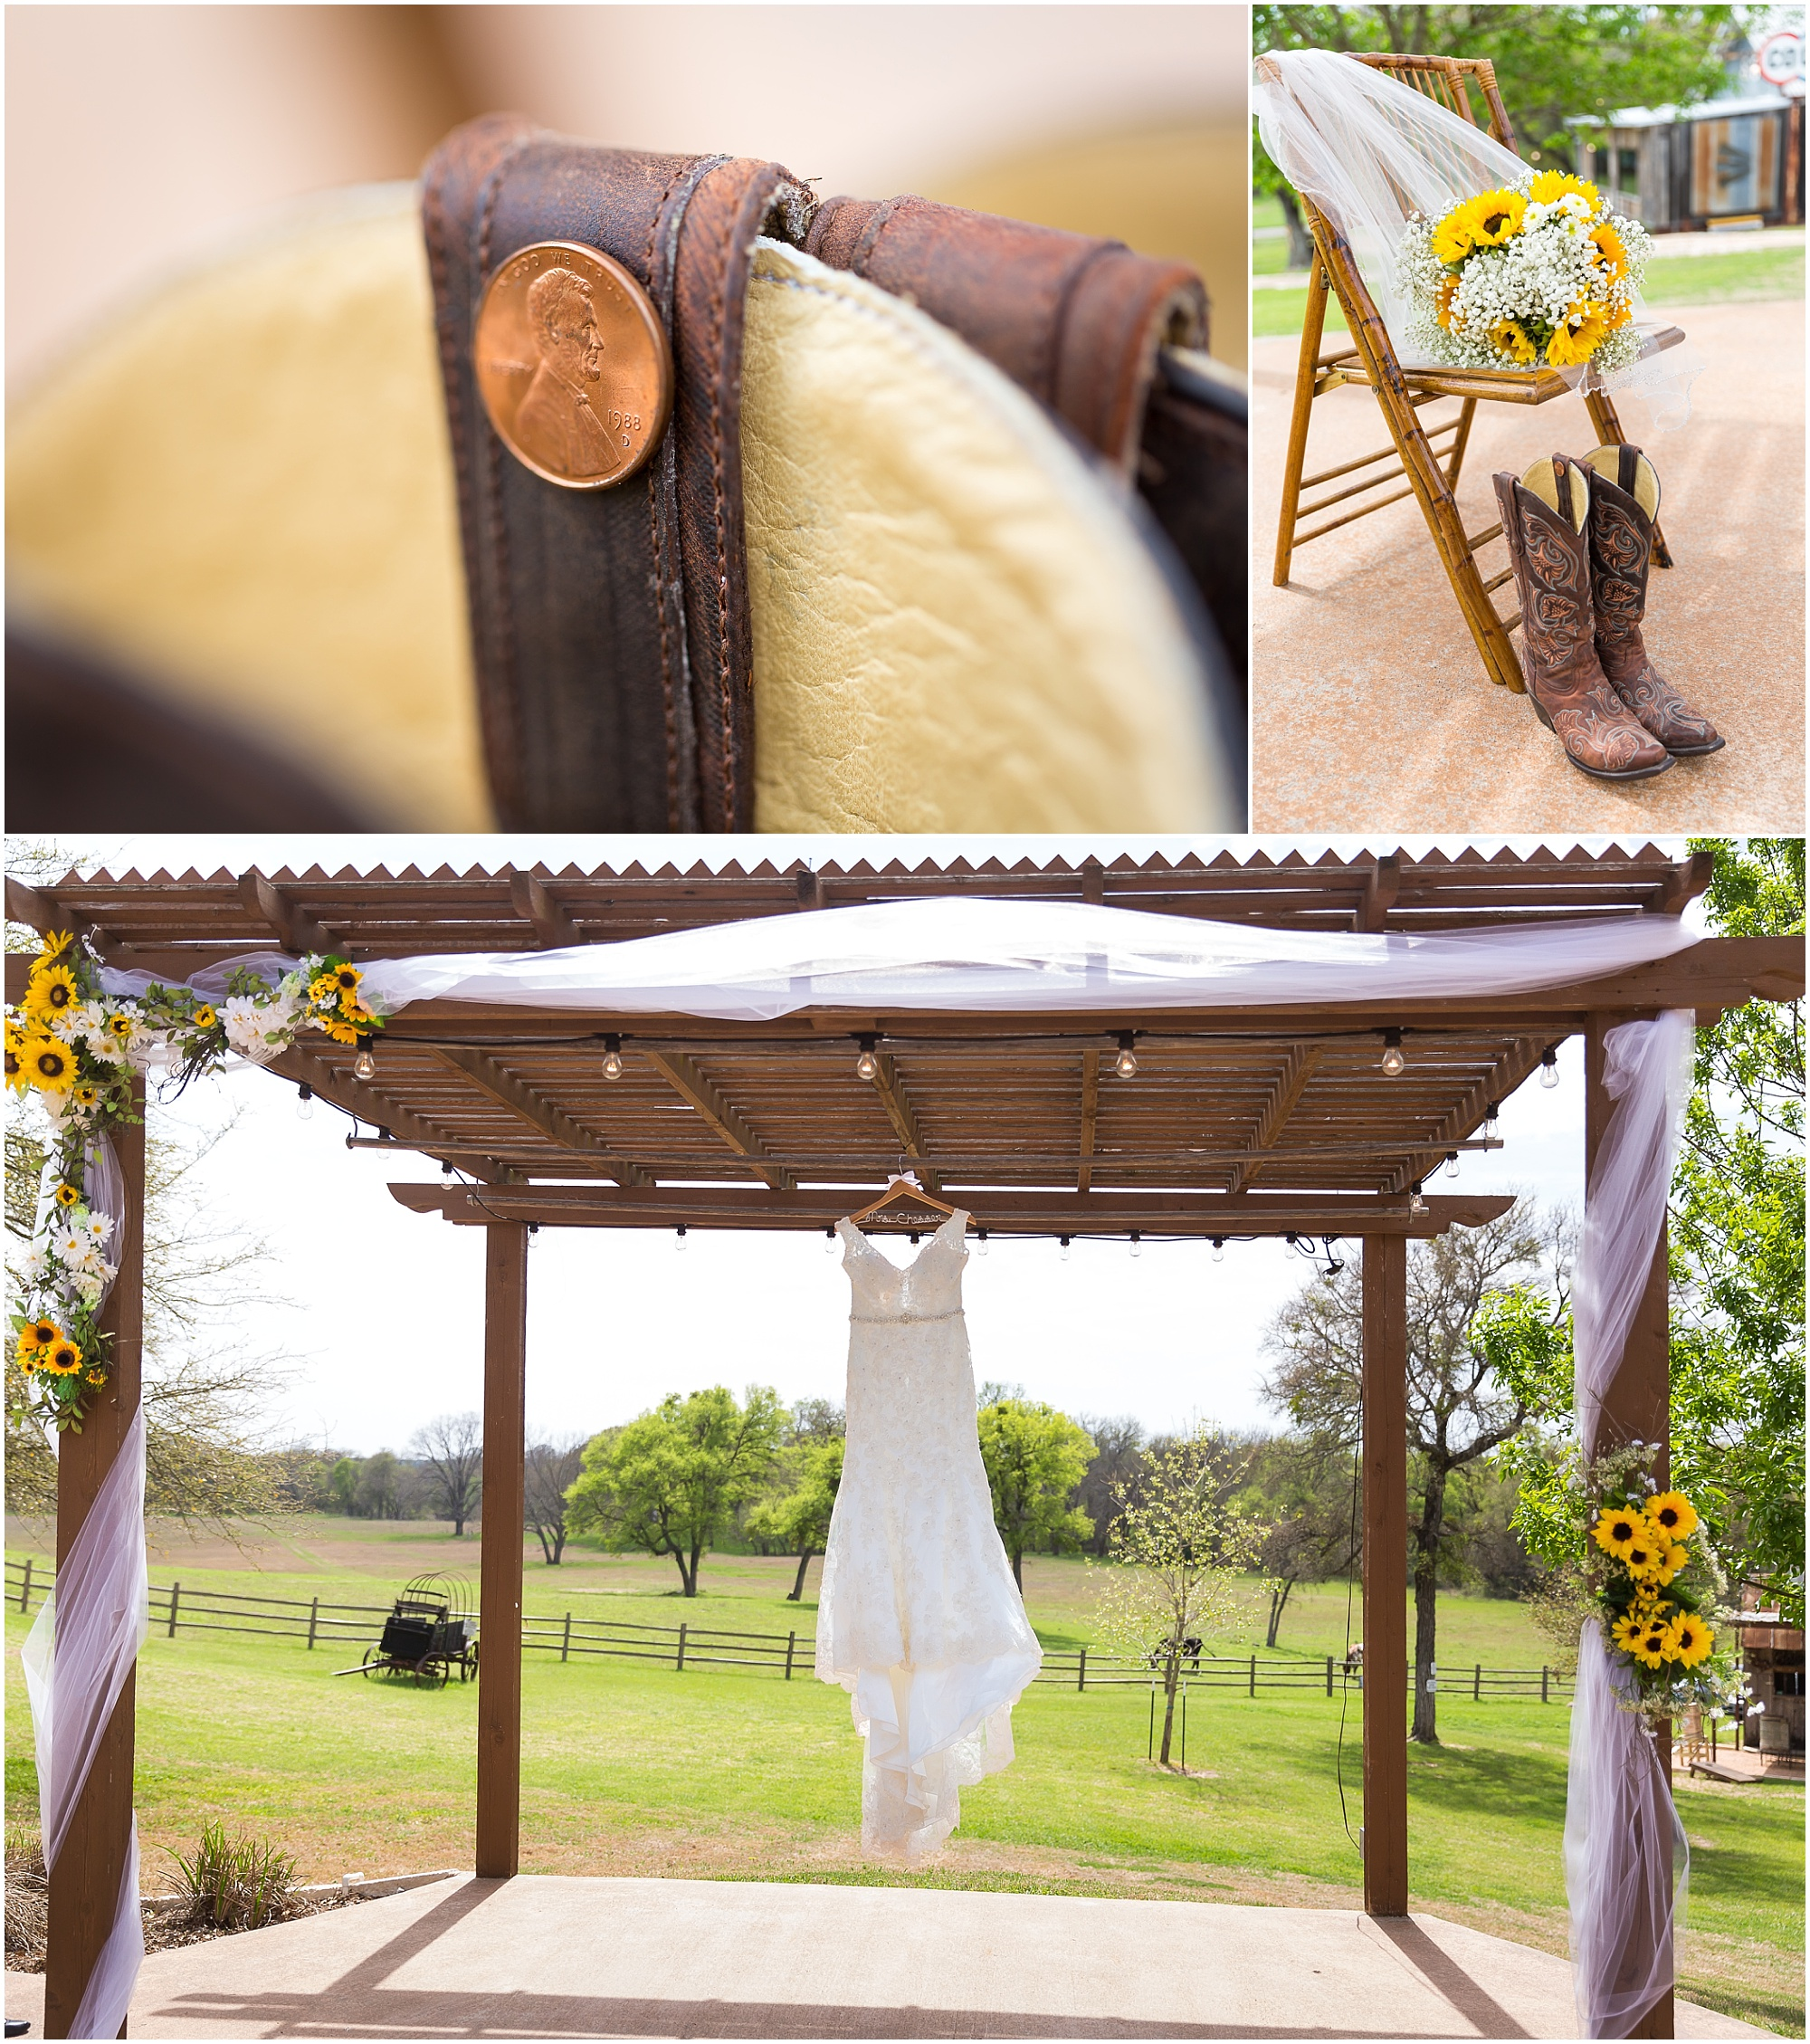 Bride glued a penny in her boot on her wedding day - rustic wedding at Peacock River Ranch - Jason & Melaina Photography - www.jasonandmelaina.com